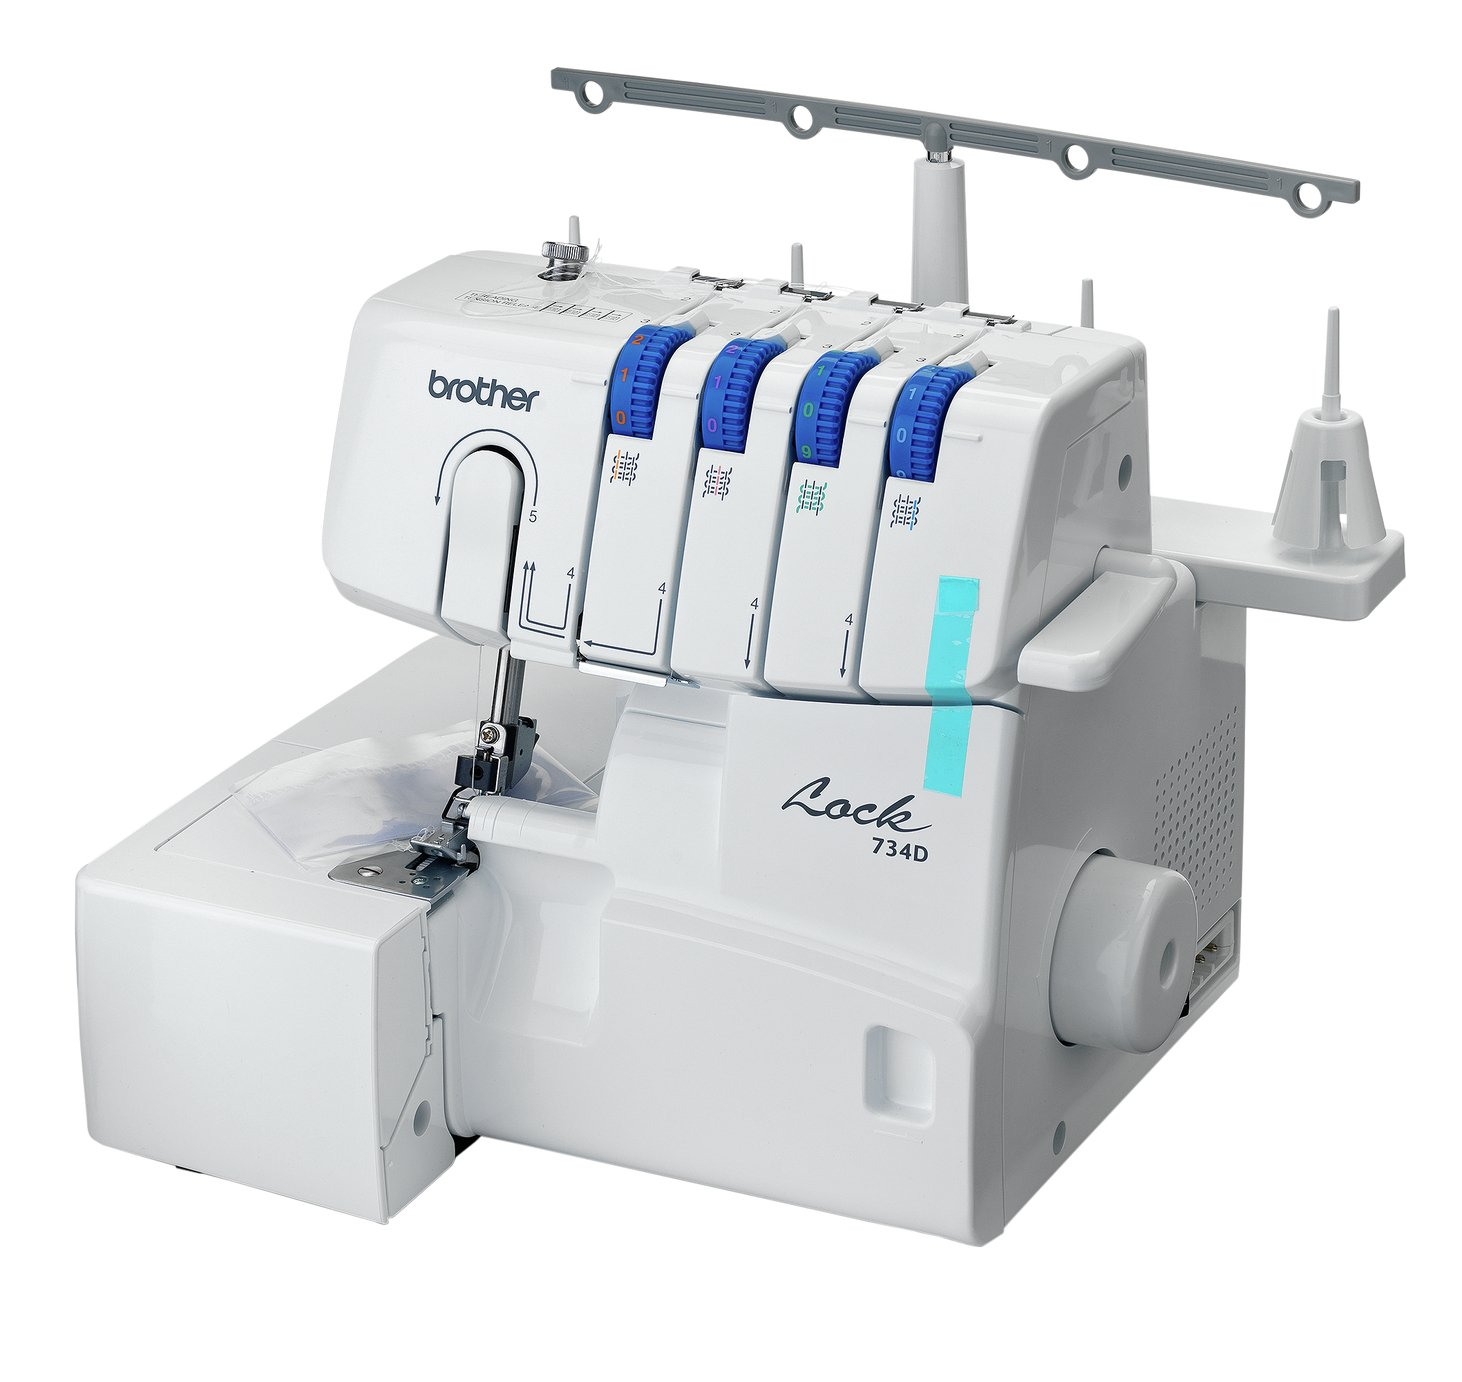 Brother - 734D Overlocker lowest price